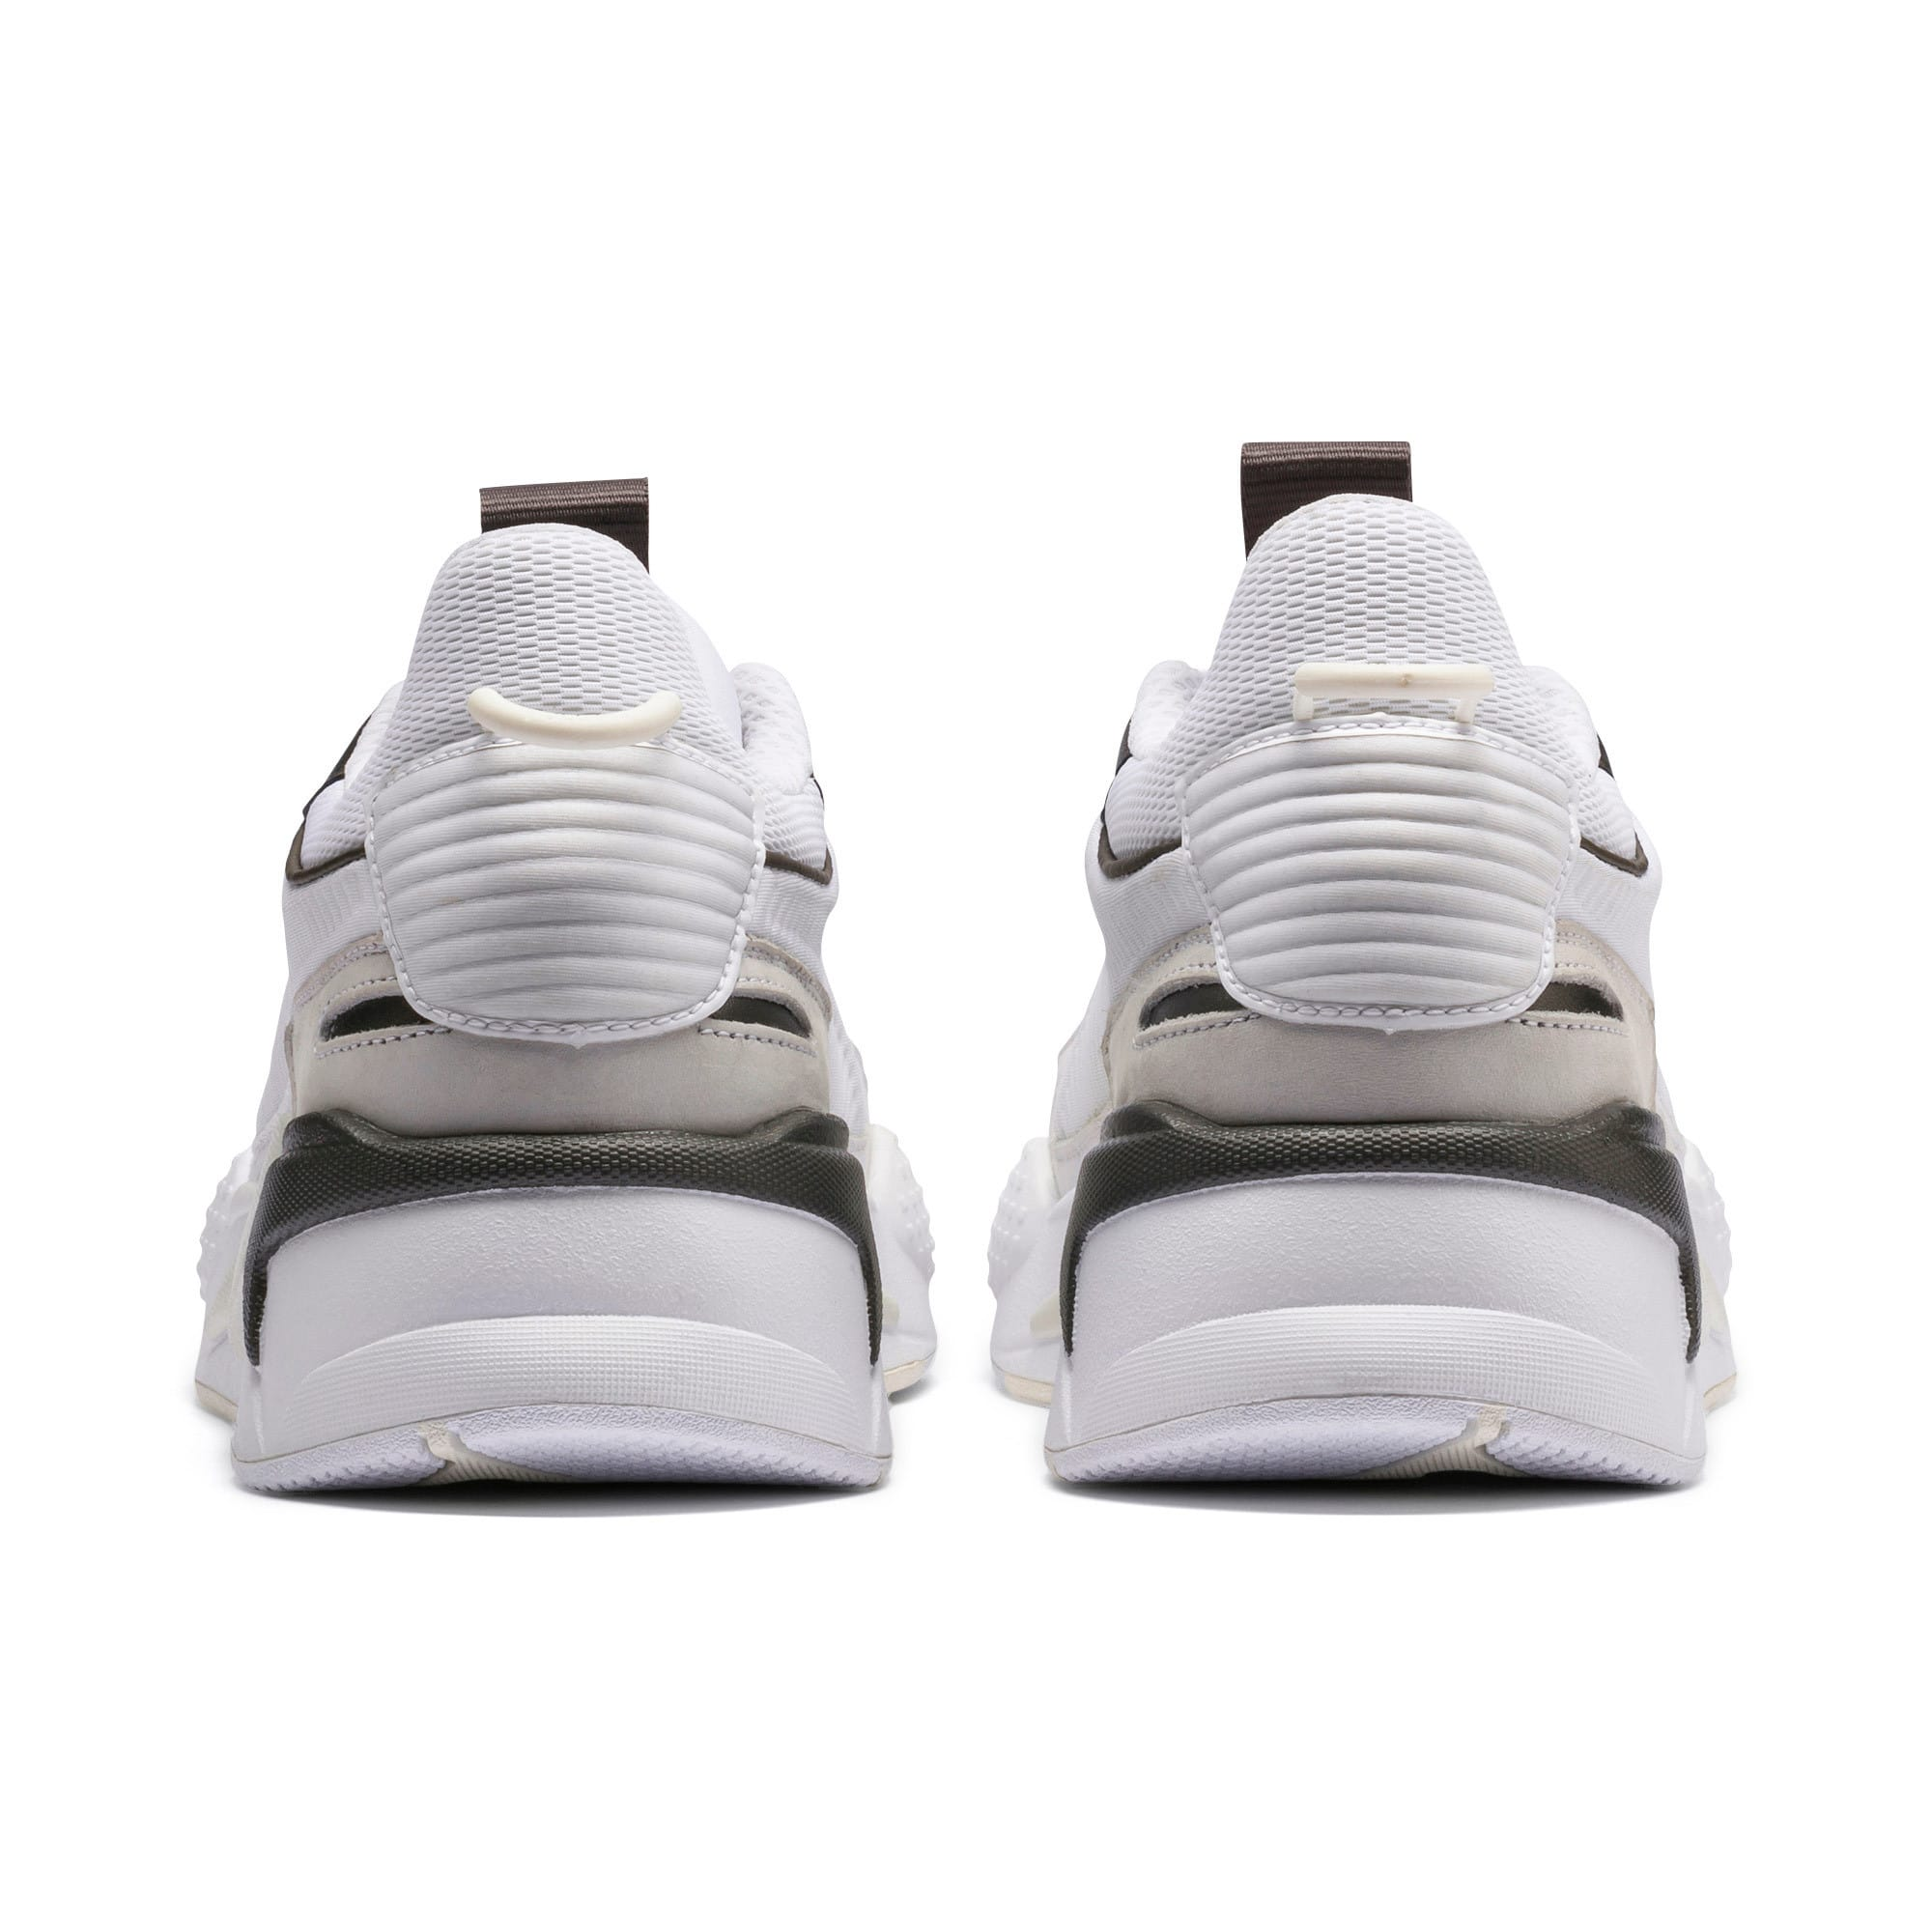 Thumbnail 4 of RS-X TROPHY, Puma White-Bronze, medium-JPN